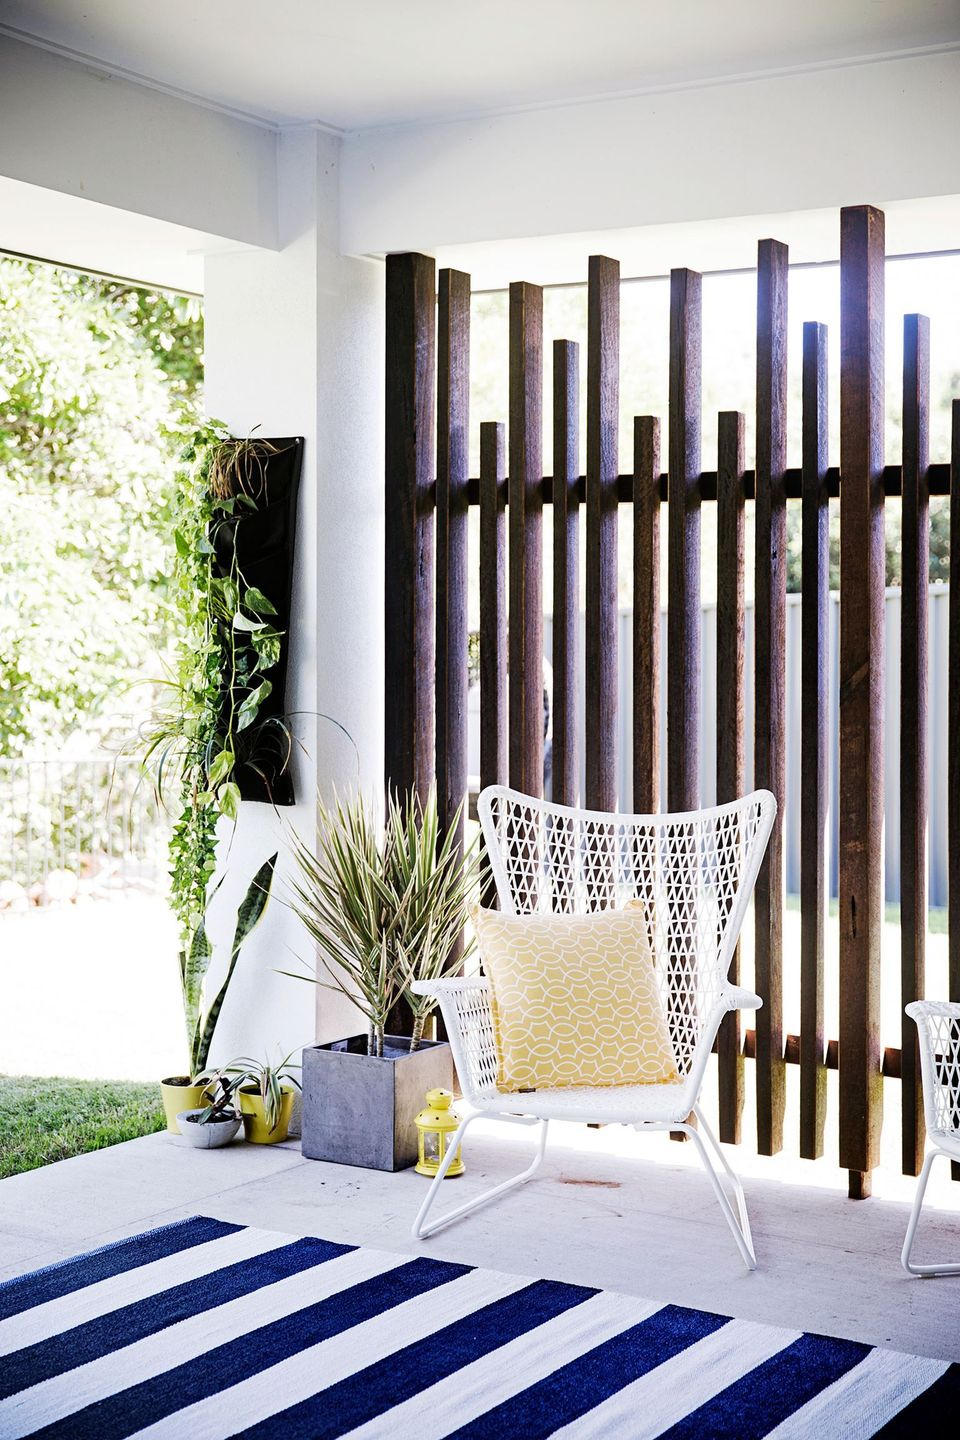 Cool Privacy Fence Wooden Design for Backyard 58 - Hoommy.com